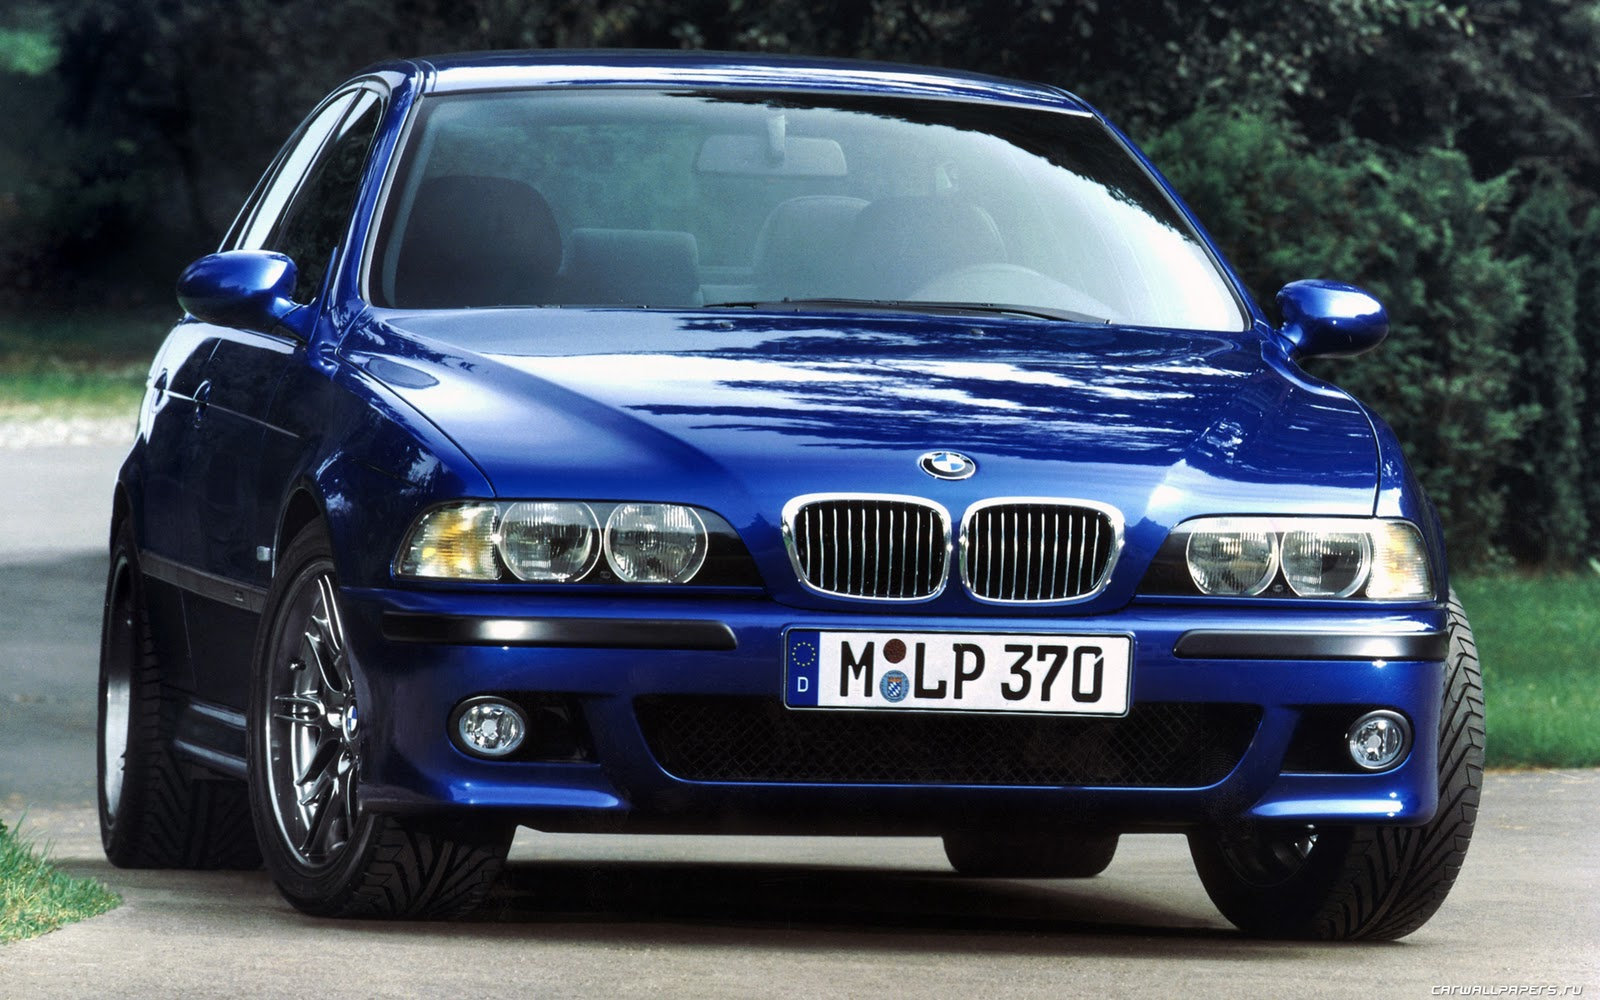 Wallpapers Cars Bmw E39 M5